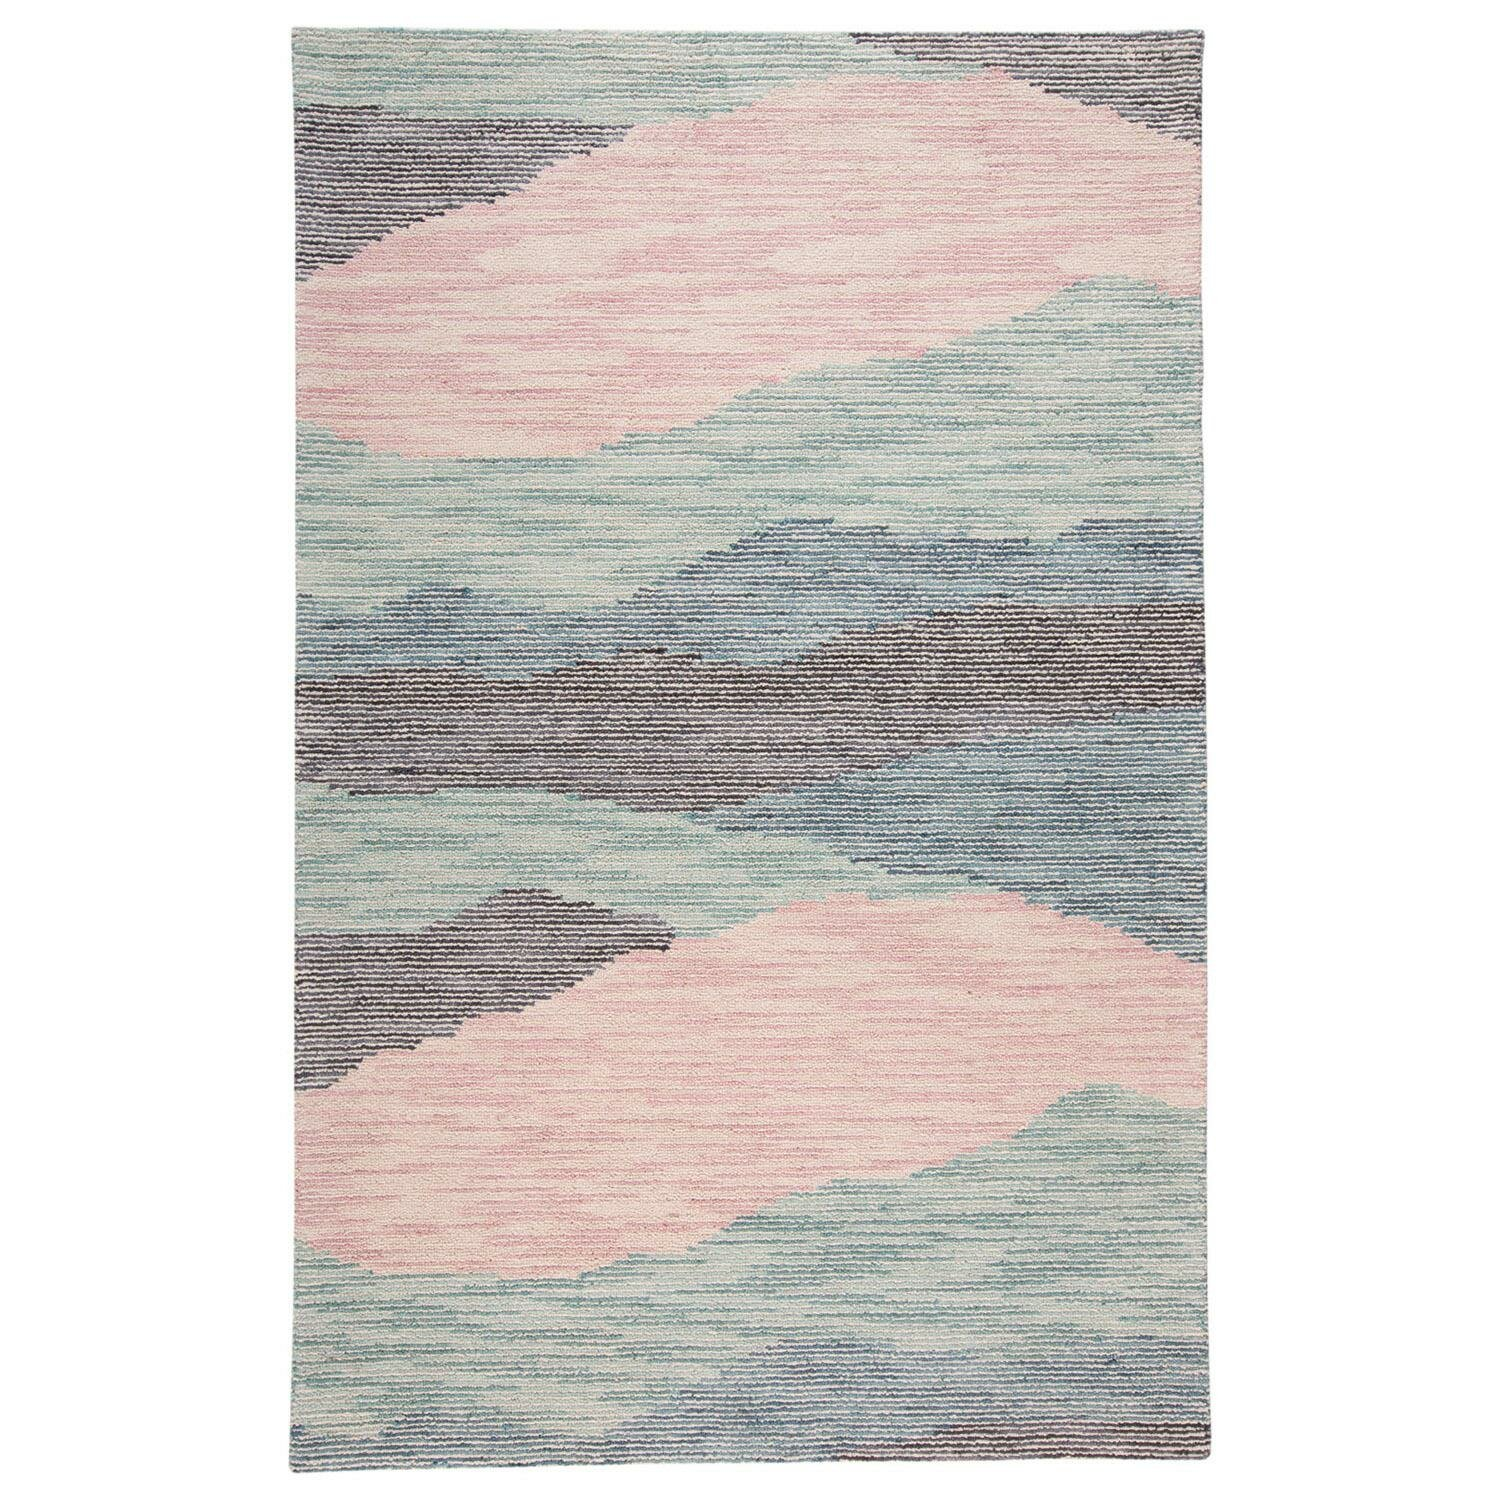 George Oliver Currie Hand Tufted Wool Cotton Blue Pink Gray Area Rug Reviews Wayfair